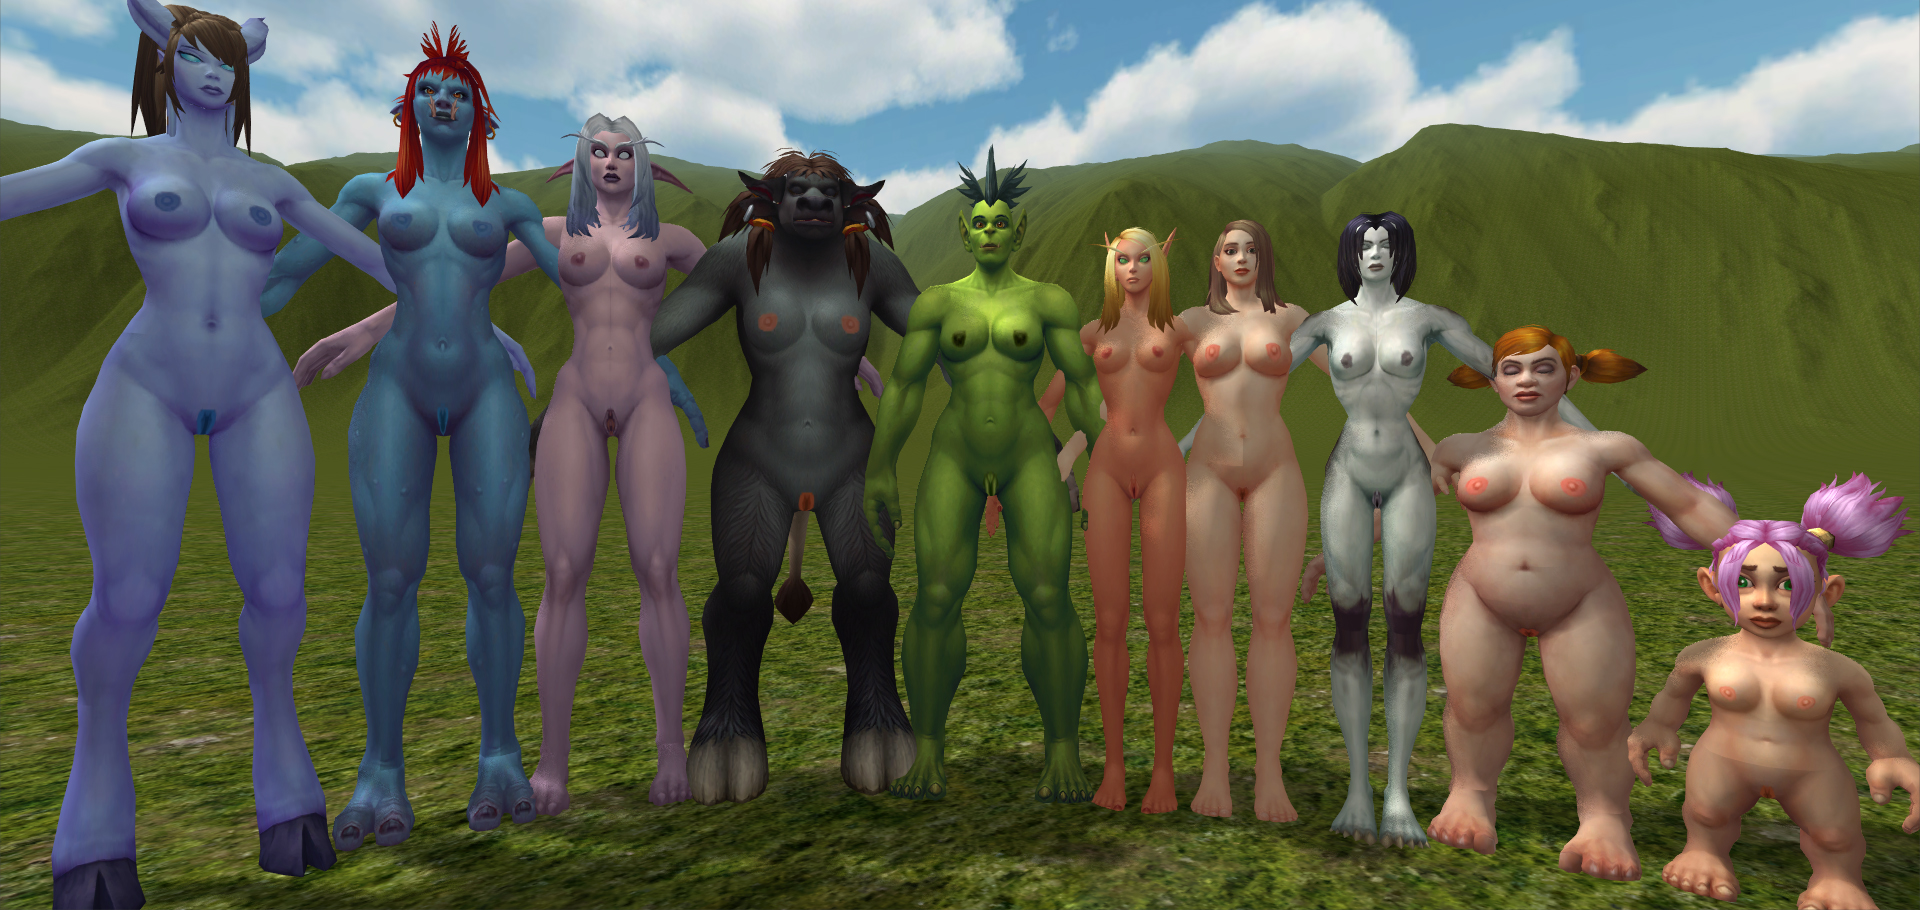 Nude warcraft cartoons pornos slaves